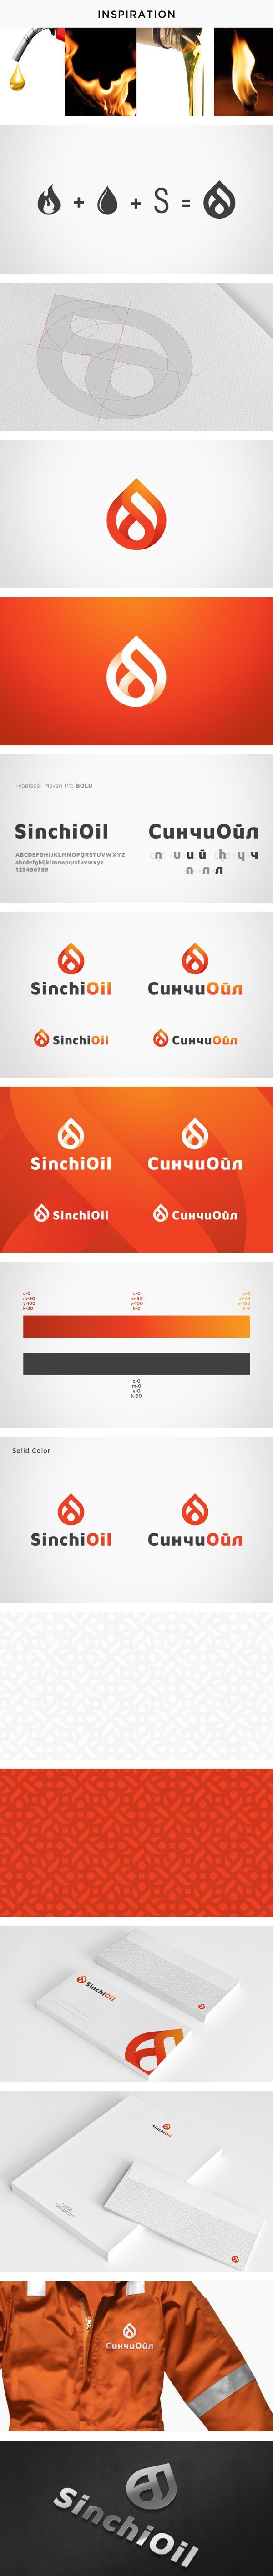 Sinchioil Visual Identity. Very clever, simple, and clean design. Love the pattern that the logo creates.: